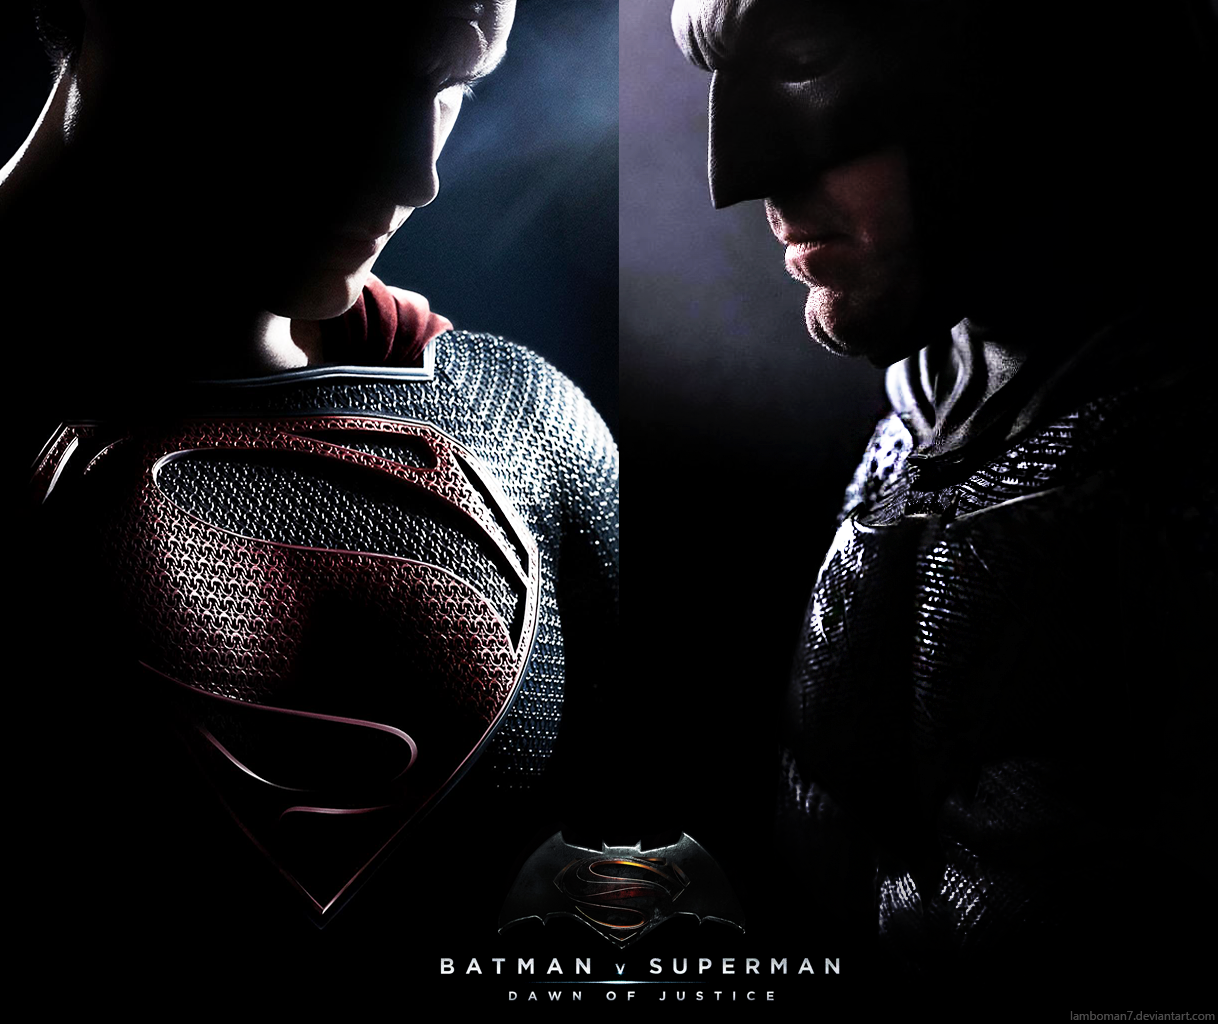 The Brilliance of Zack Snyder's DC Universe - The Passion of